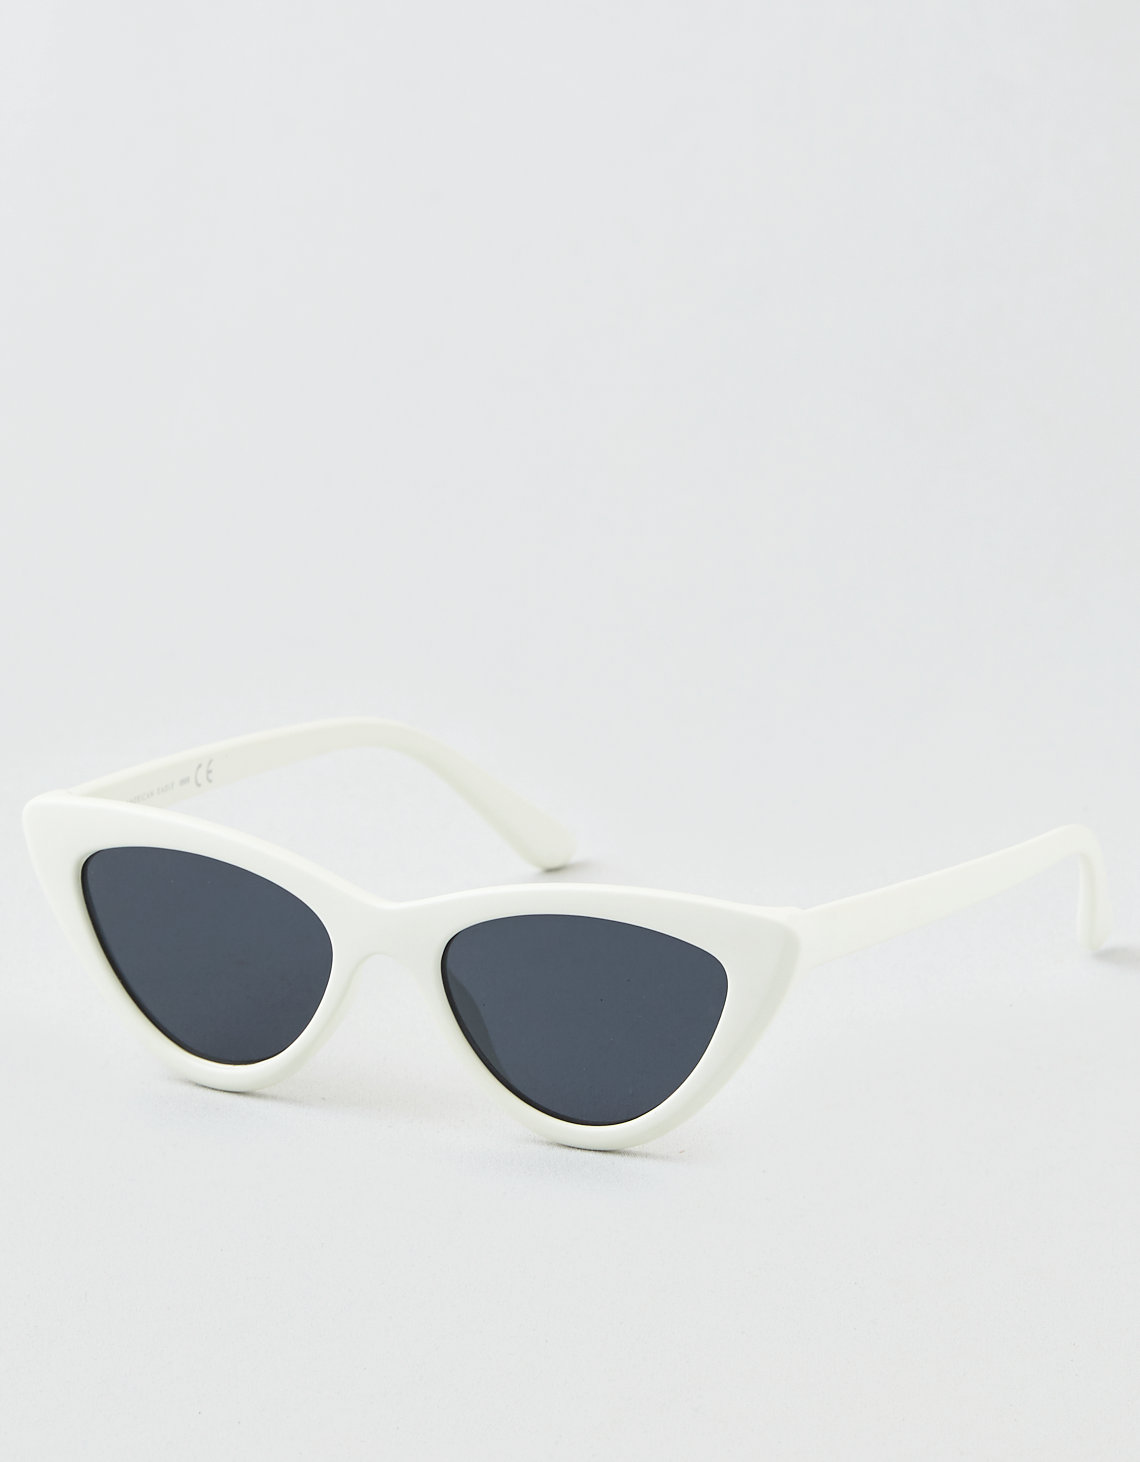 e148dd4d6b6ae6 AEO Cat Eye Sunglasses. Placeholder image. Product Image